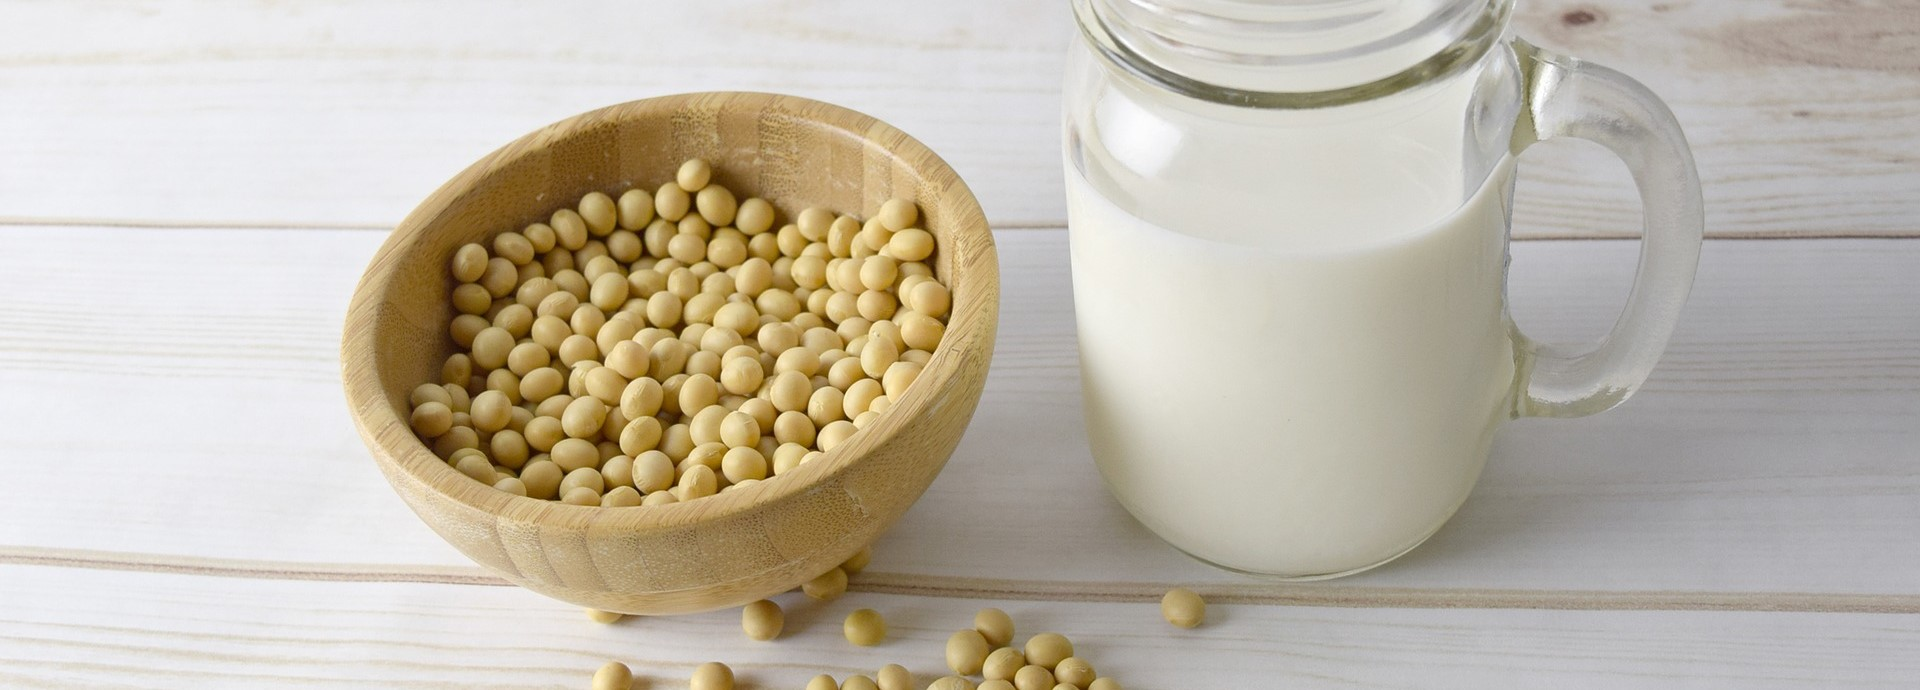 Soy Beans and Soy Milk | Breast Cancer Car Donations